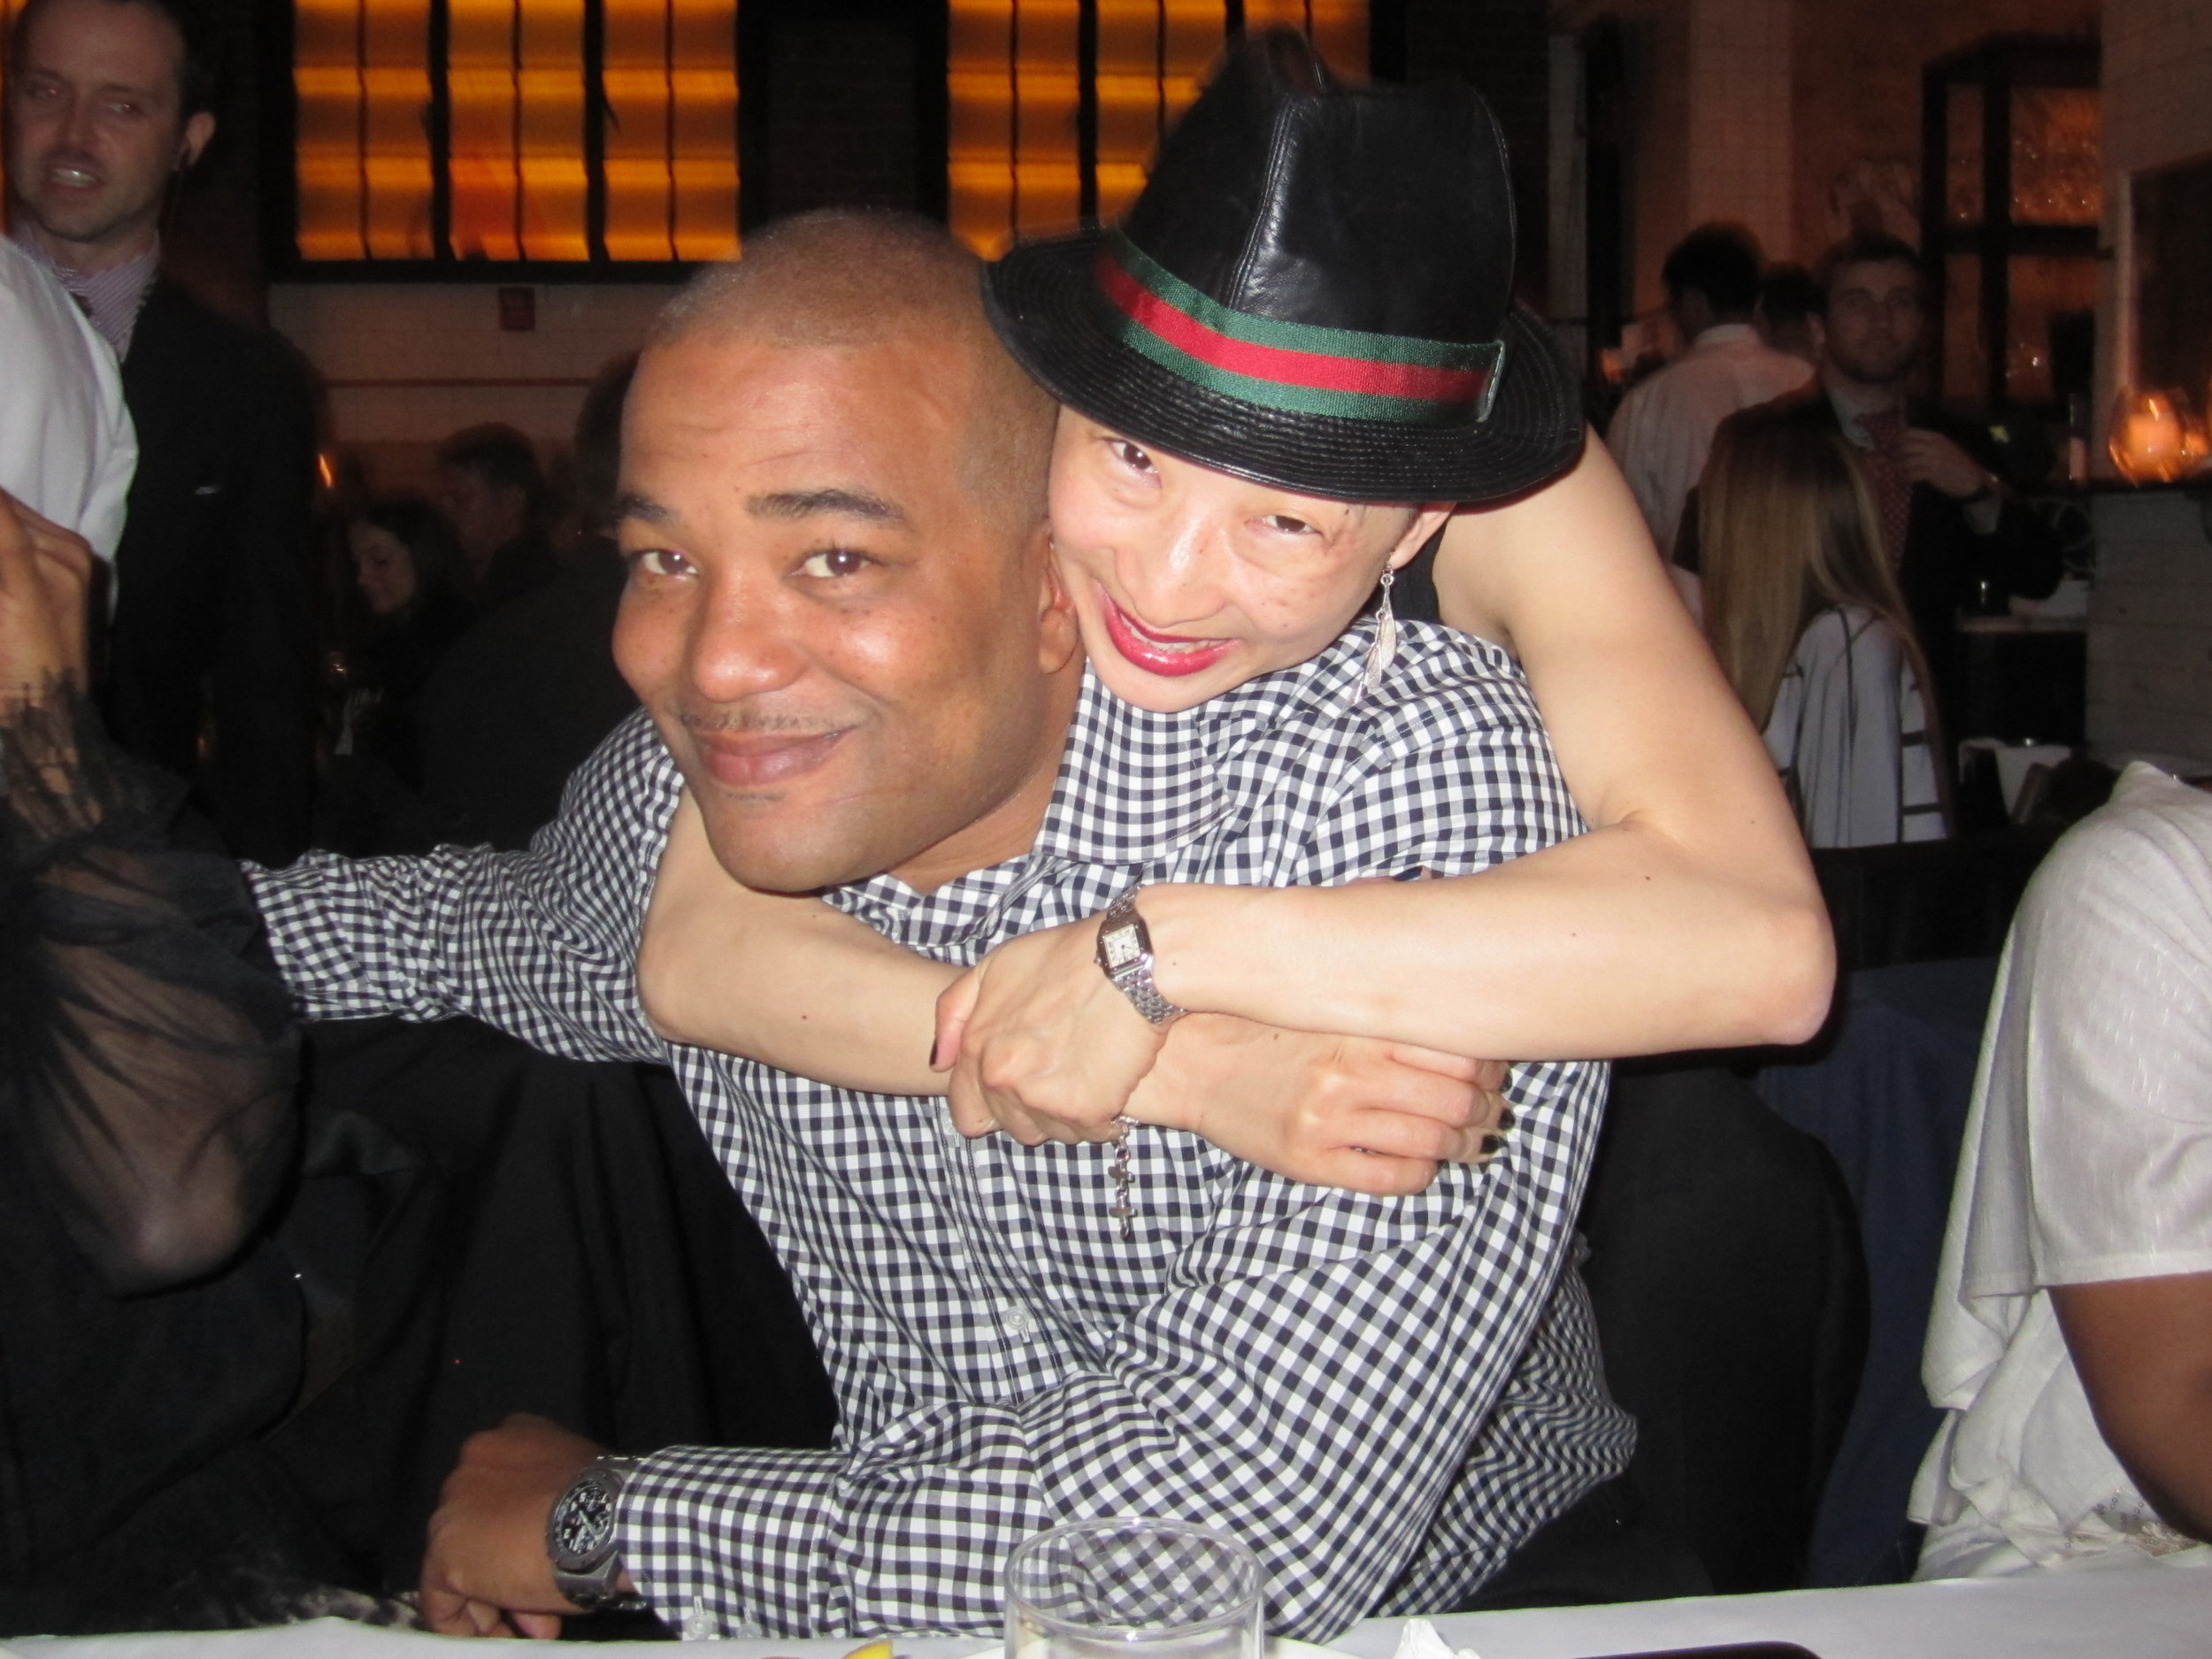 Chris' birthday party. Yet another picture wherein I hug him with all my might and he grits his teeth through it.